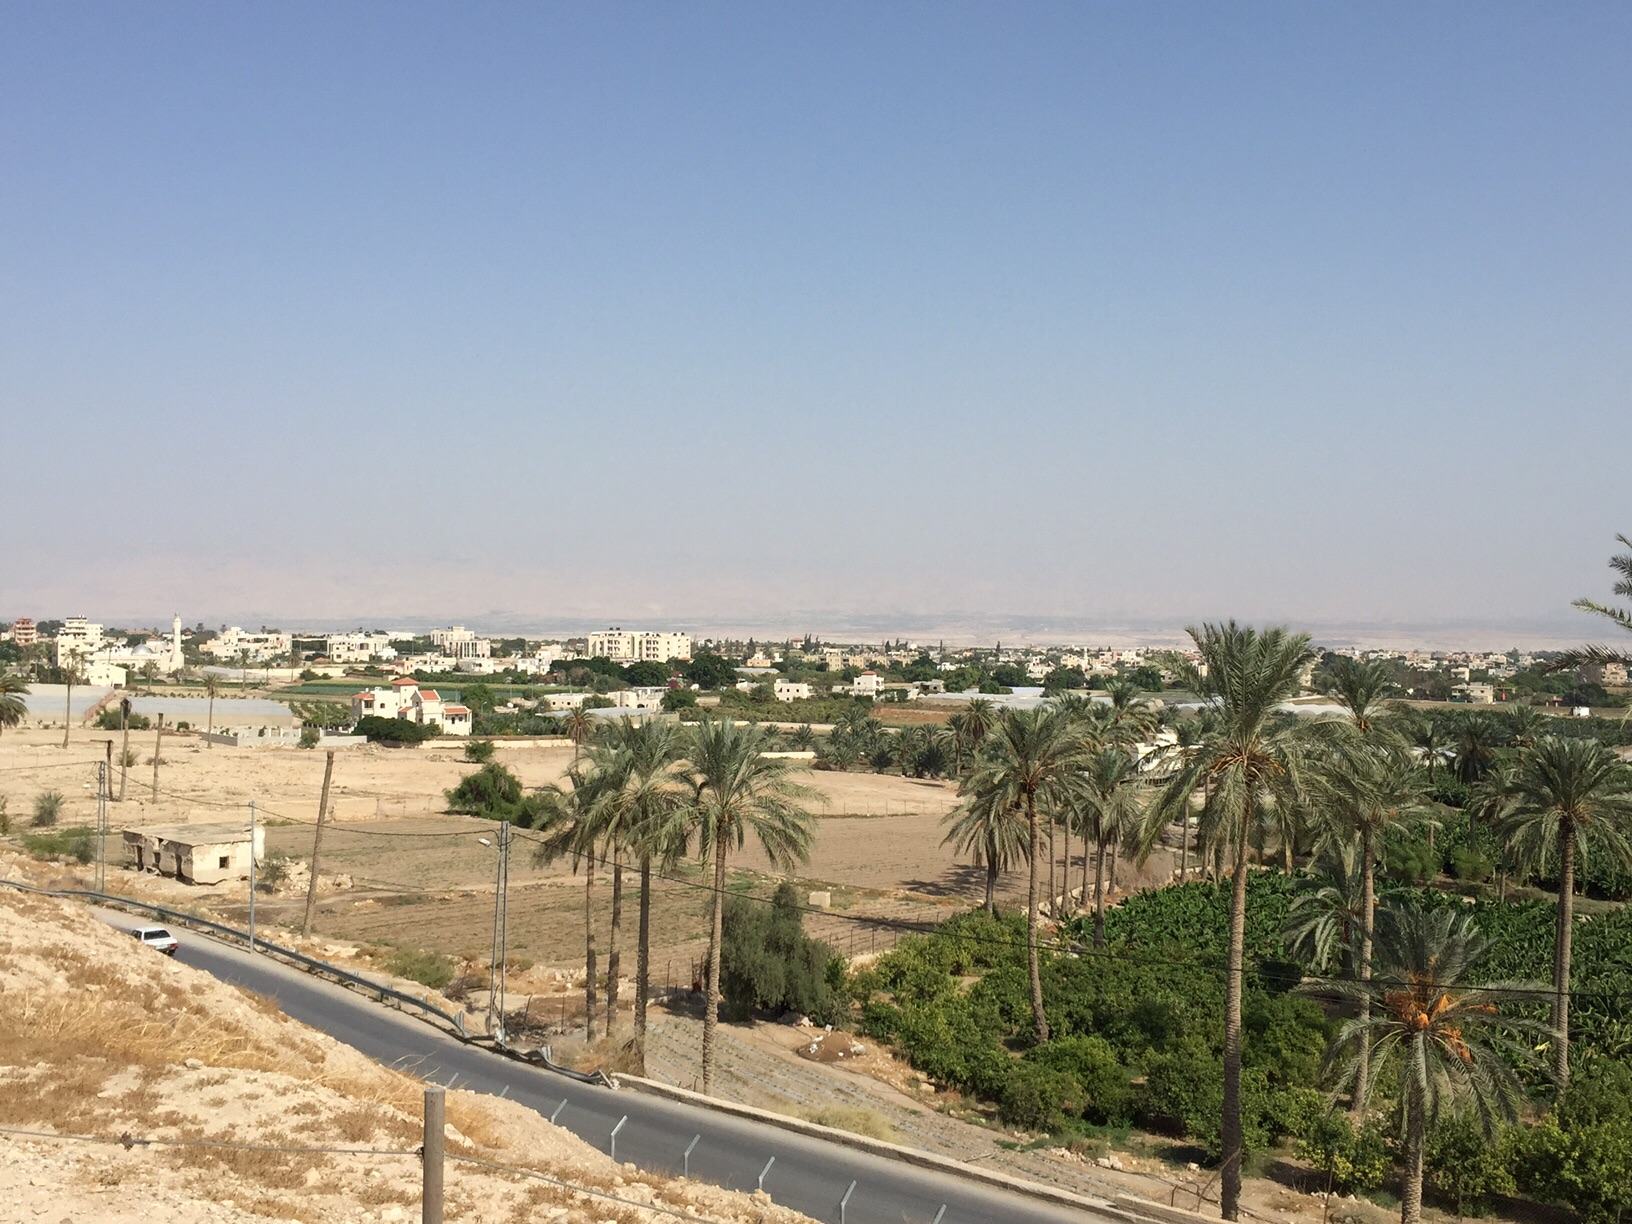 From on top of Tel Jericho looking east toward the Jordan River valley. The river is just beyond the buildings in the background.